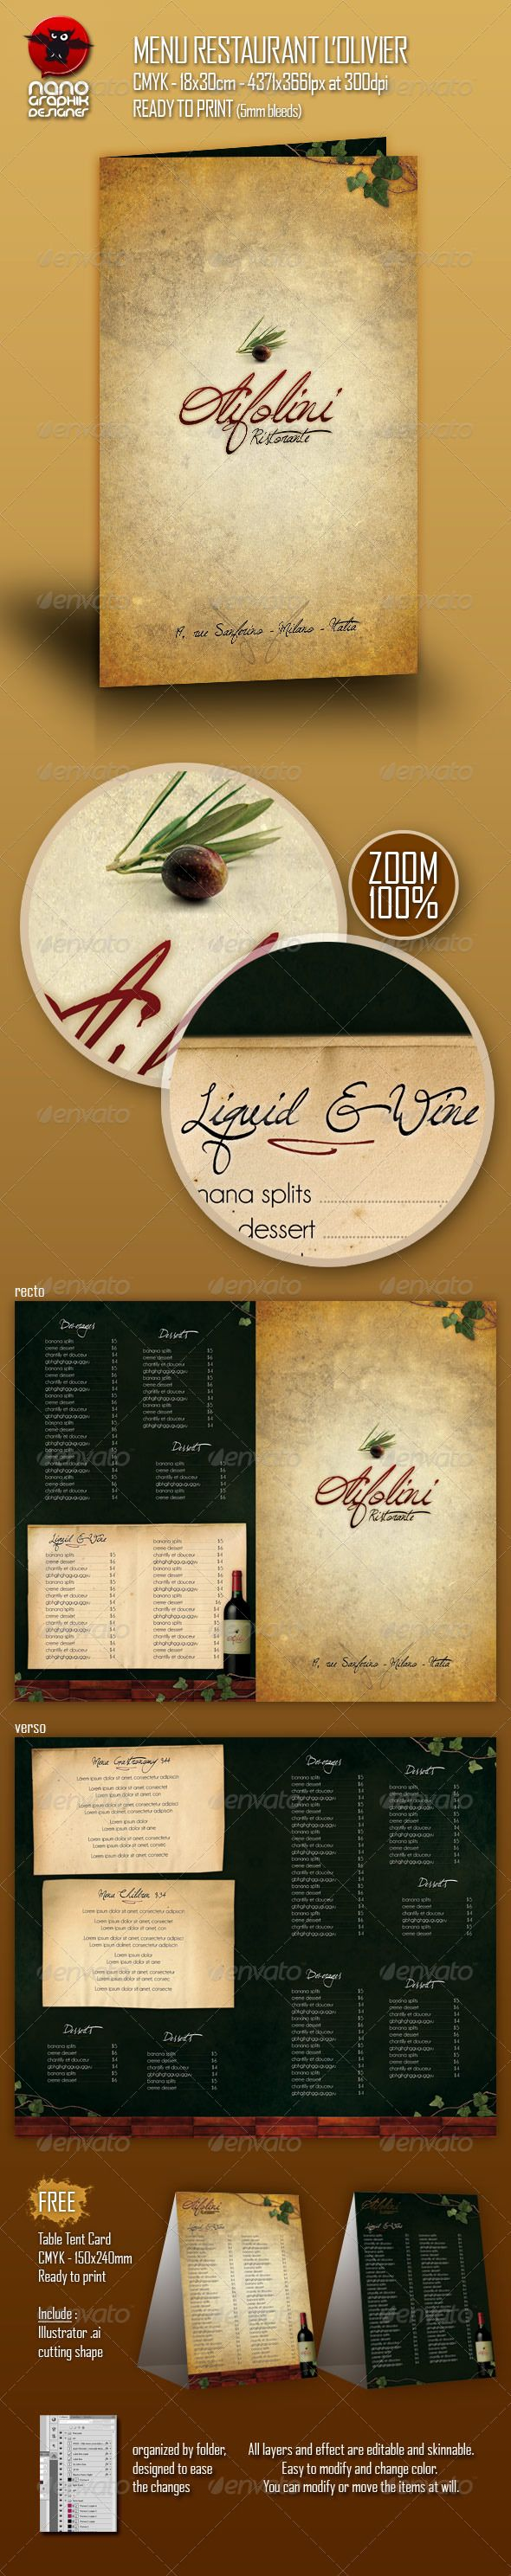 Best Restaurant Cafe Menu Templates Psd Flyer  Decorating